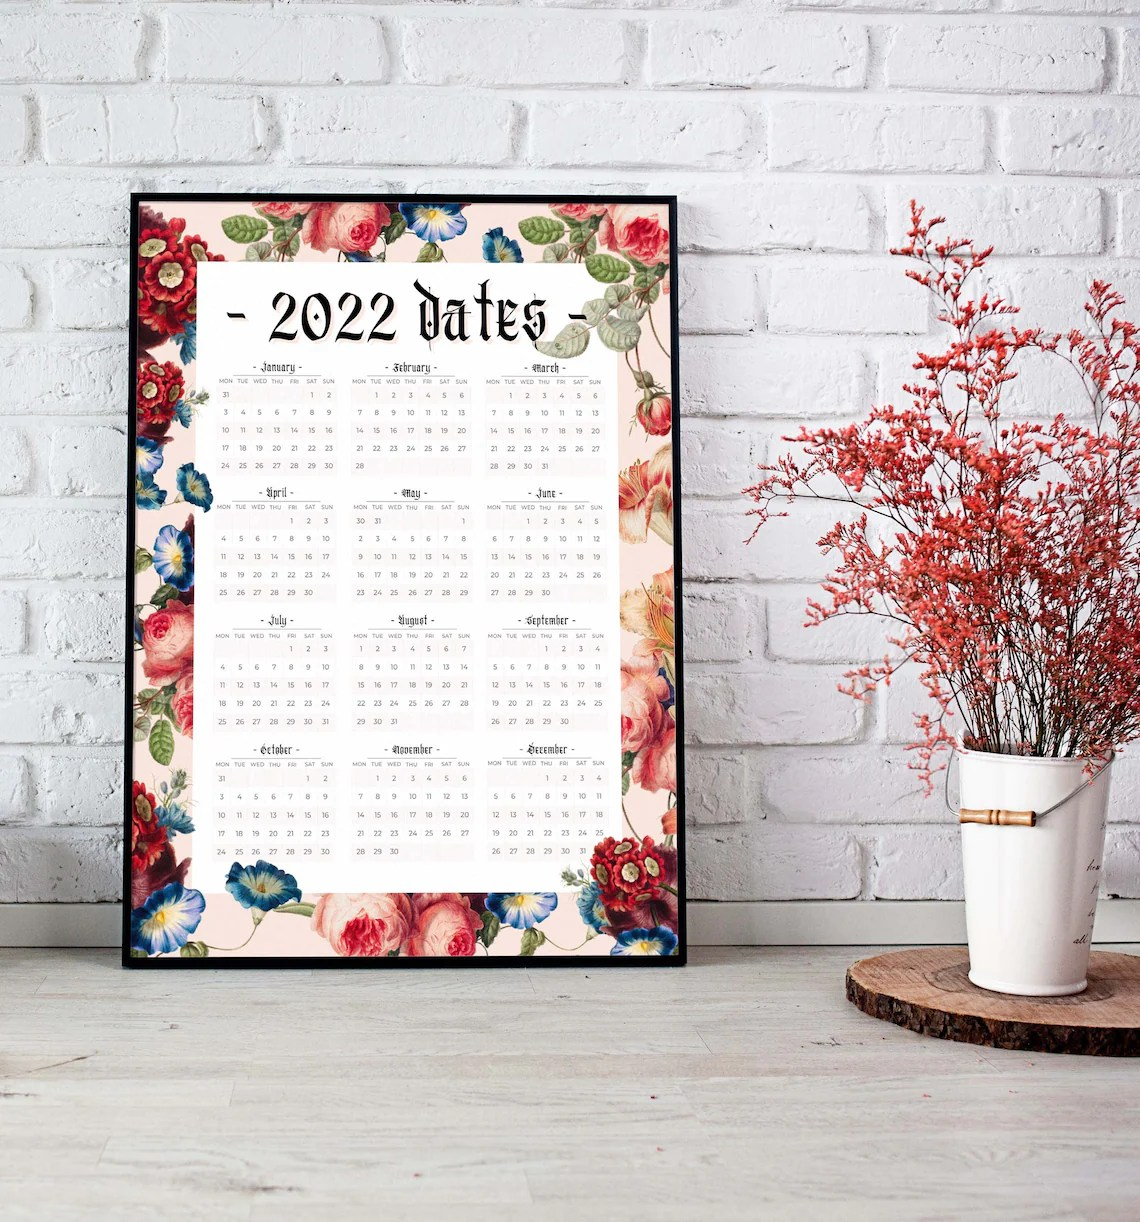 2022 Wall Calendar Year Overview Printable A3 Size Vintage image 1